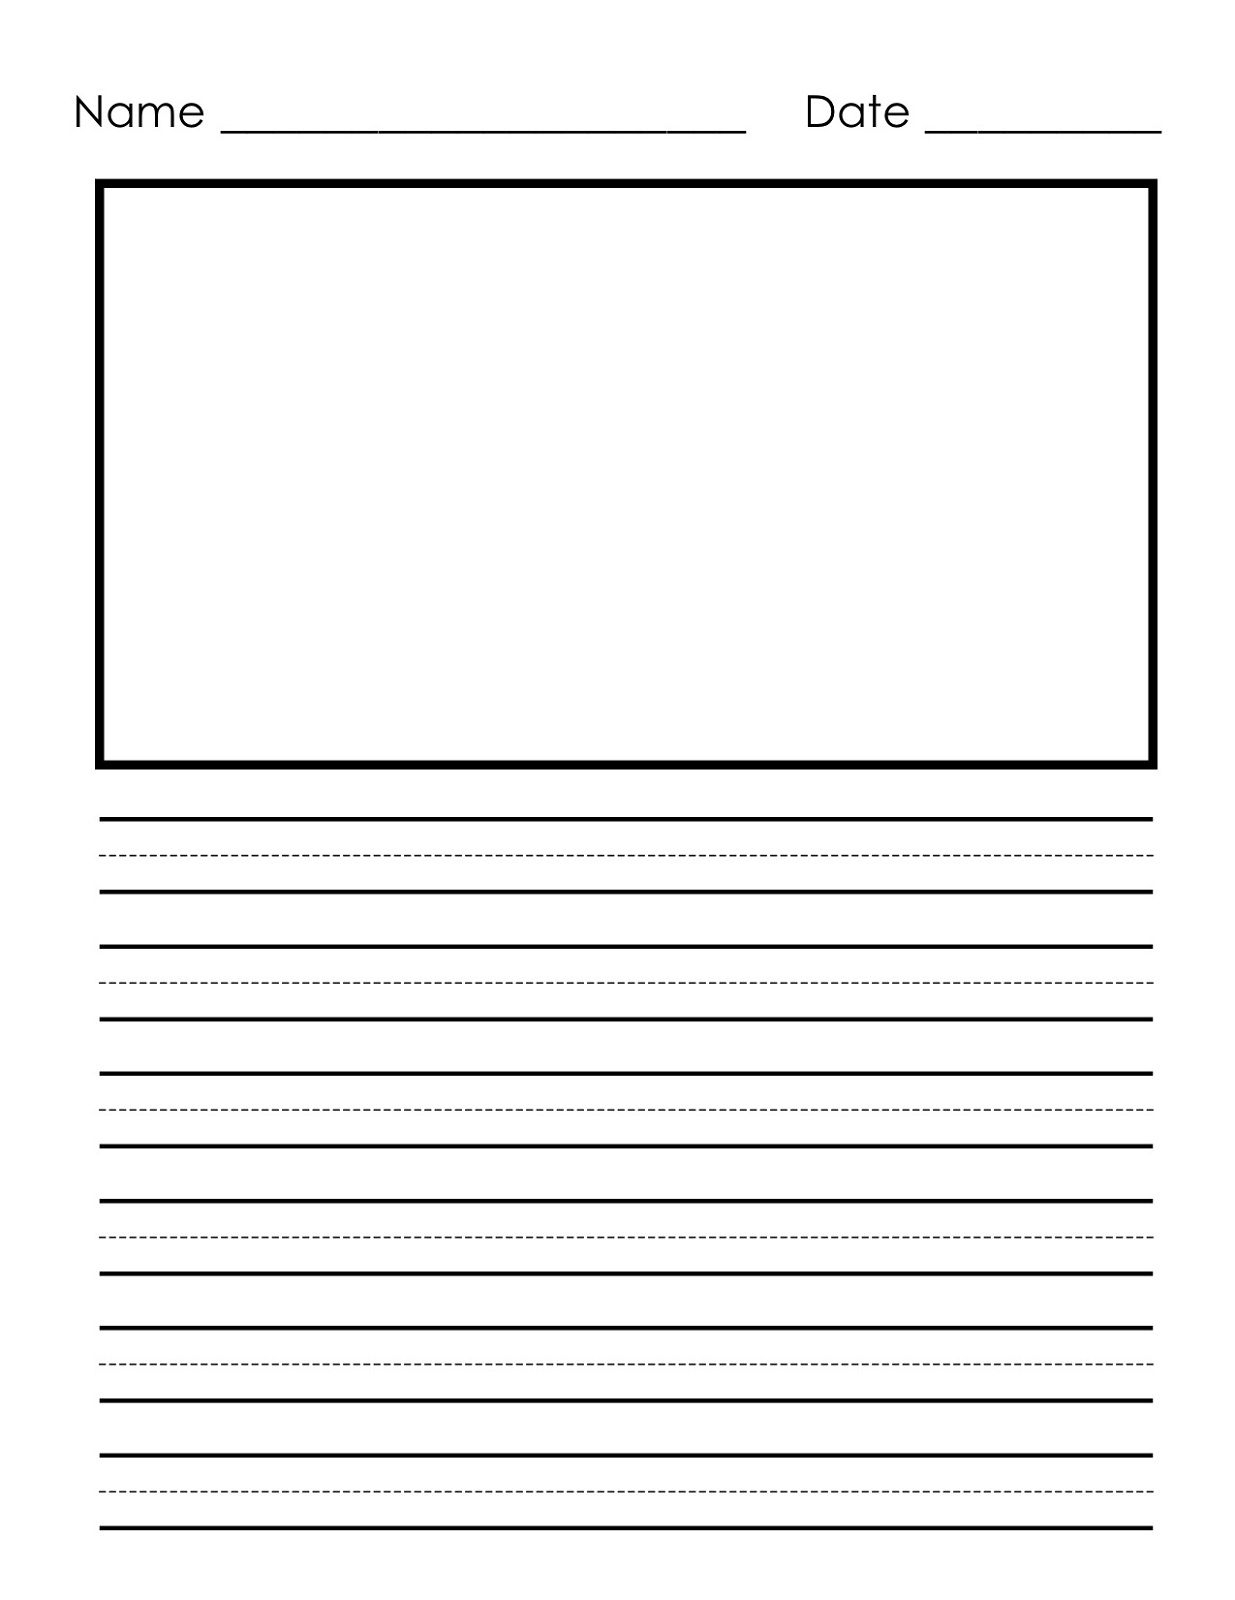 Writing Paper Printable For Children | Notebook Paper Templates - Elementary Lined Paper Printable Free